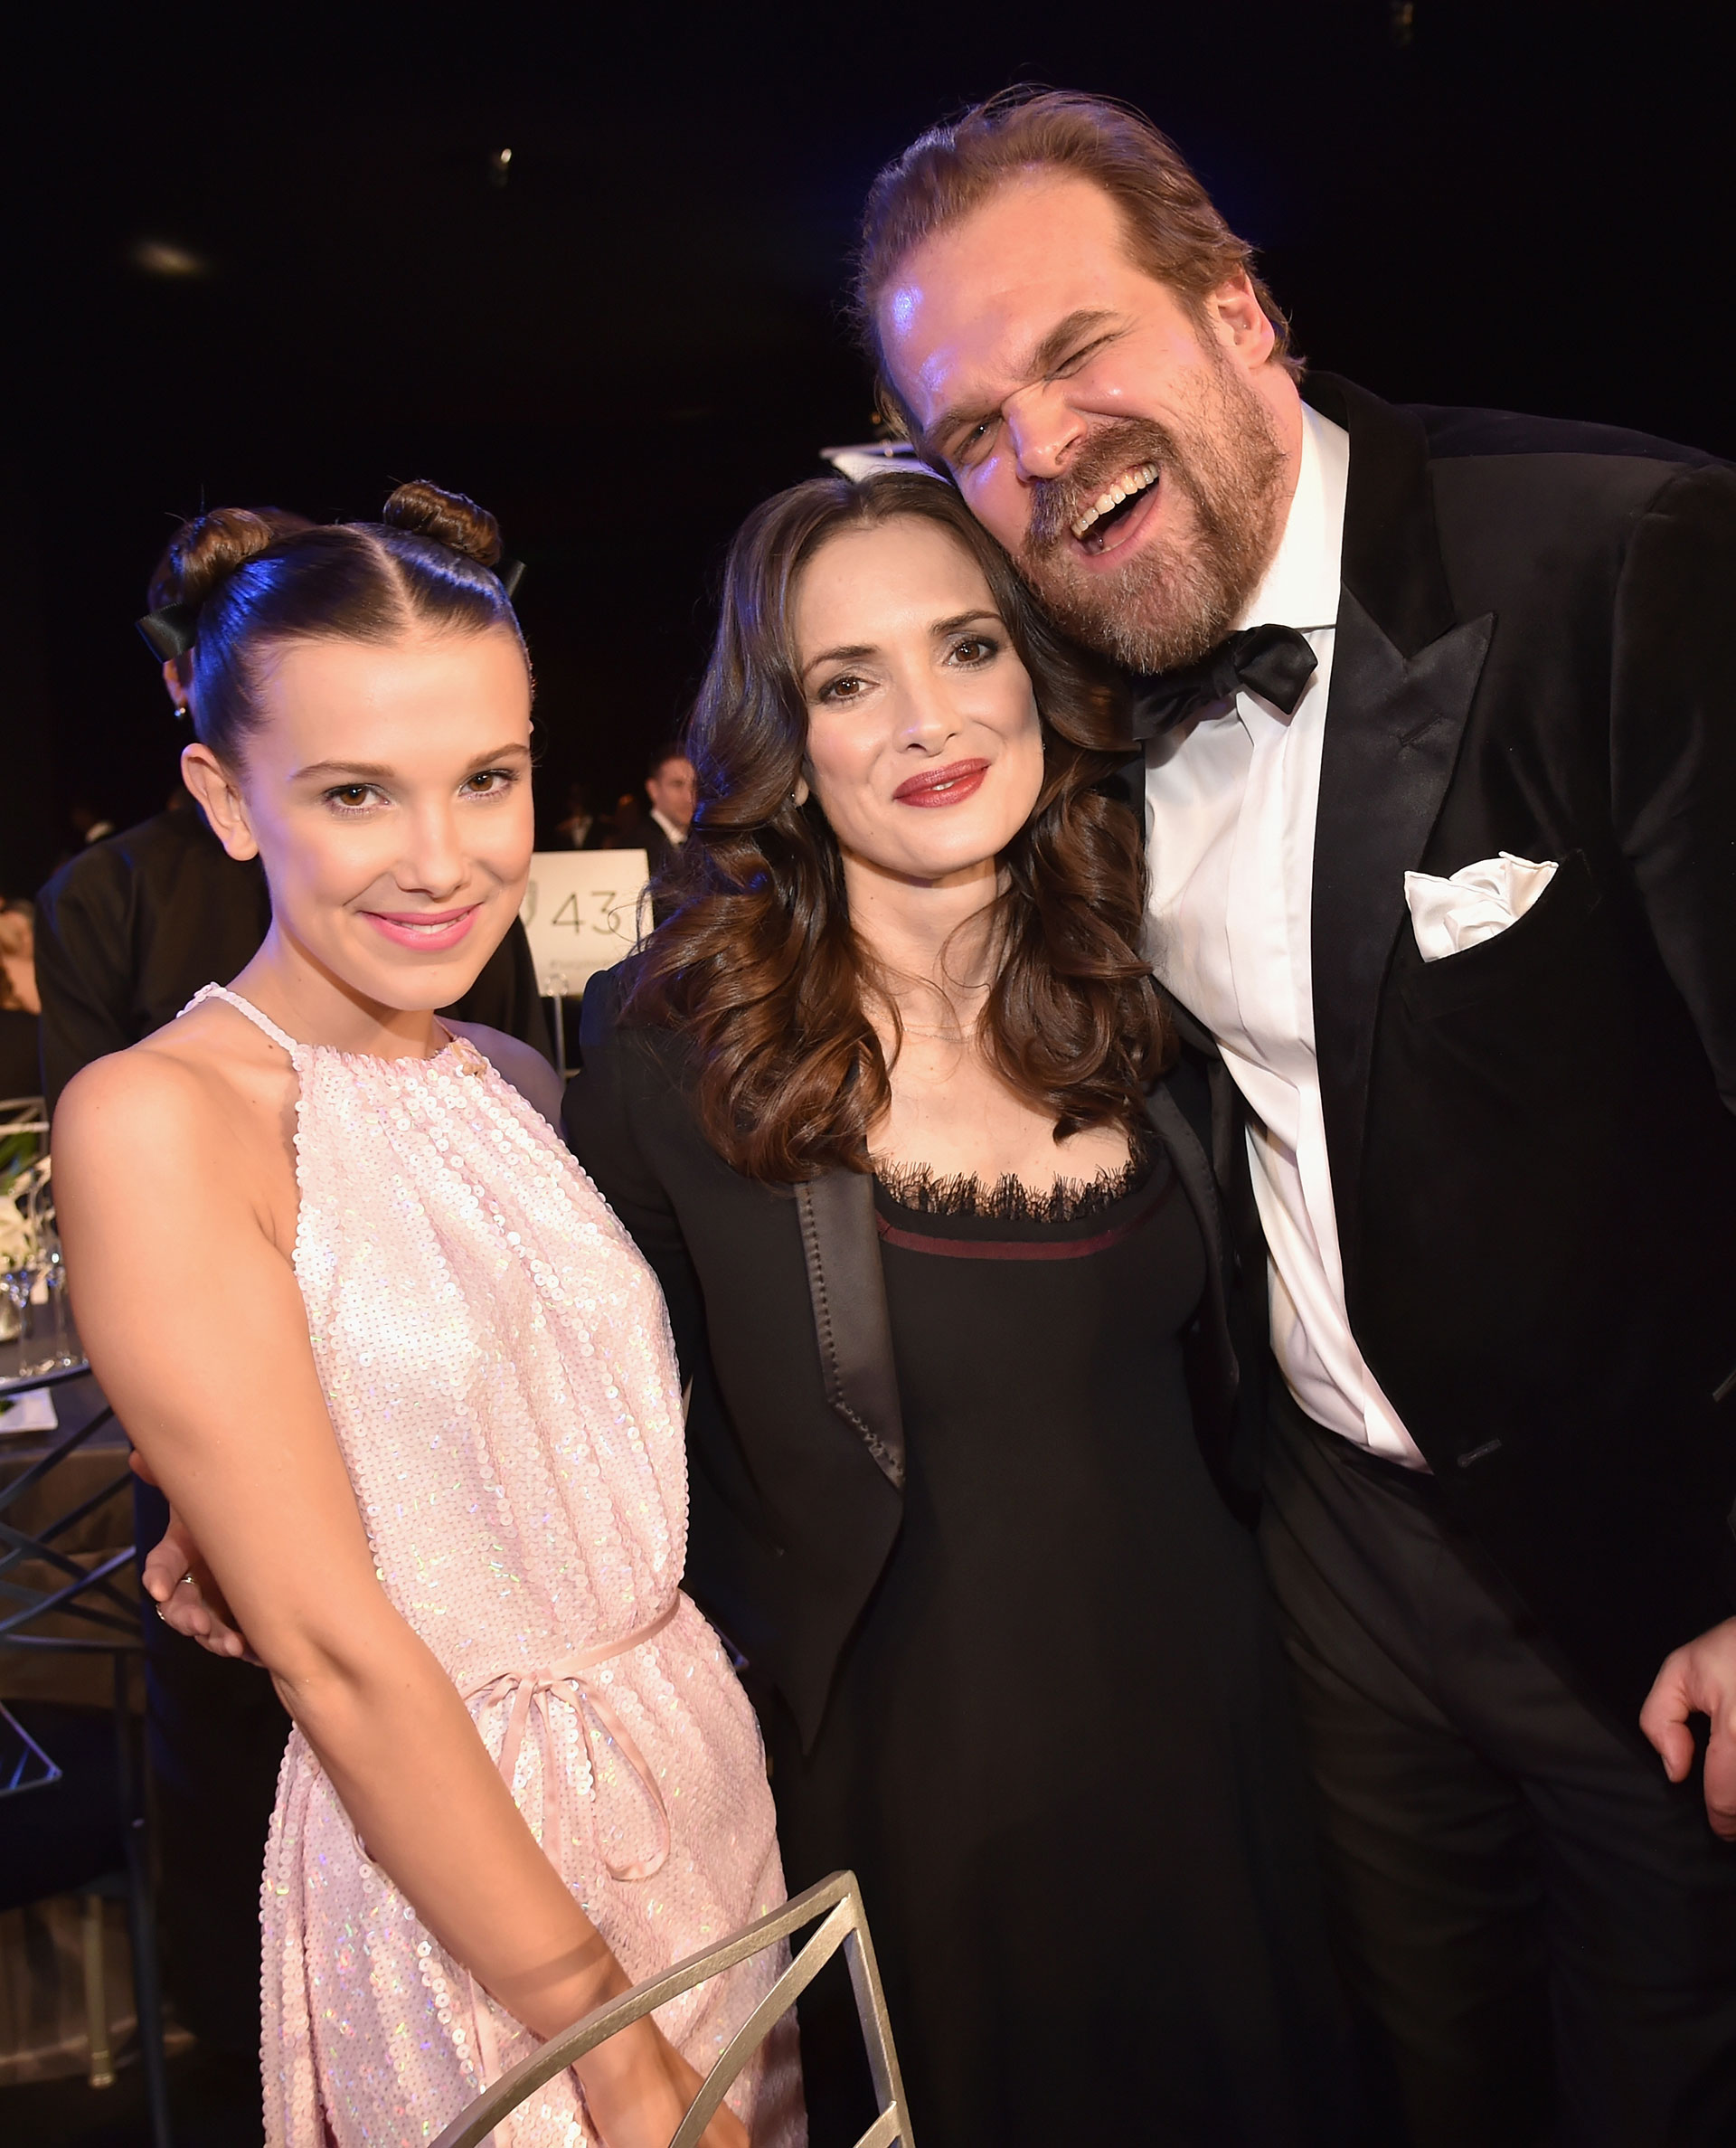 El encuentro entre Millie Bobby Brown, Winona Ryder y David Harbour. Foto by Kevin Mazur/Getty Images for Turner Image